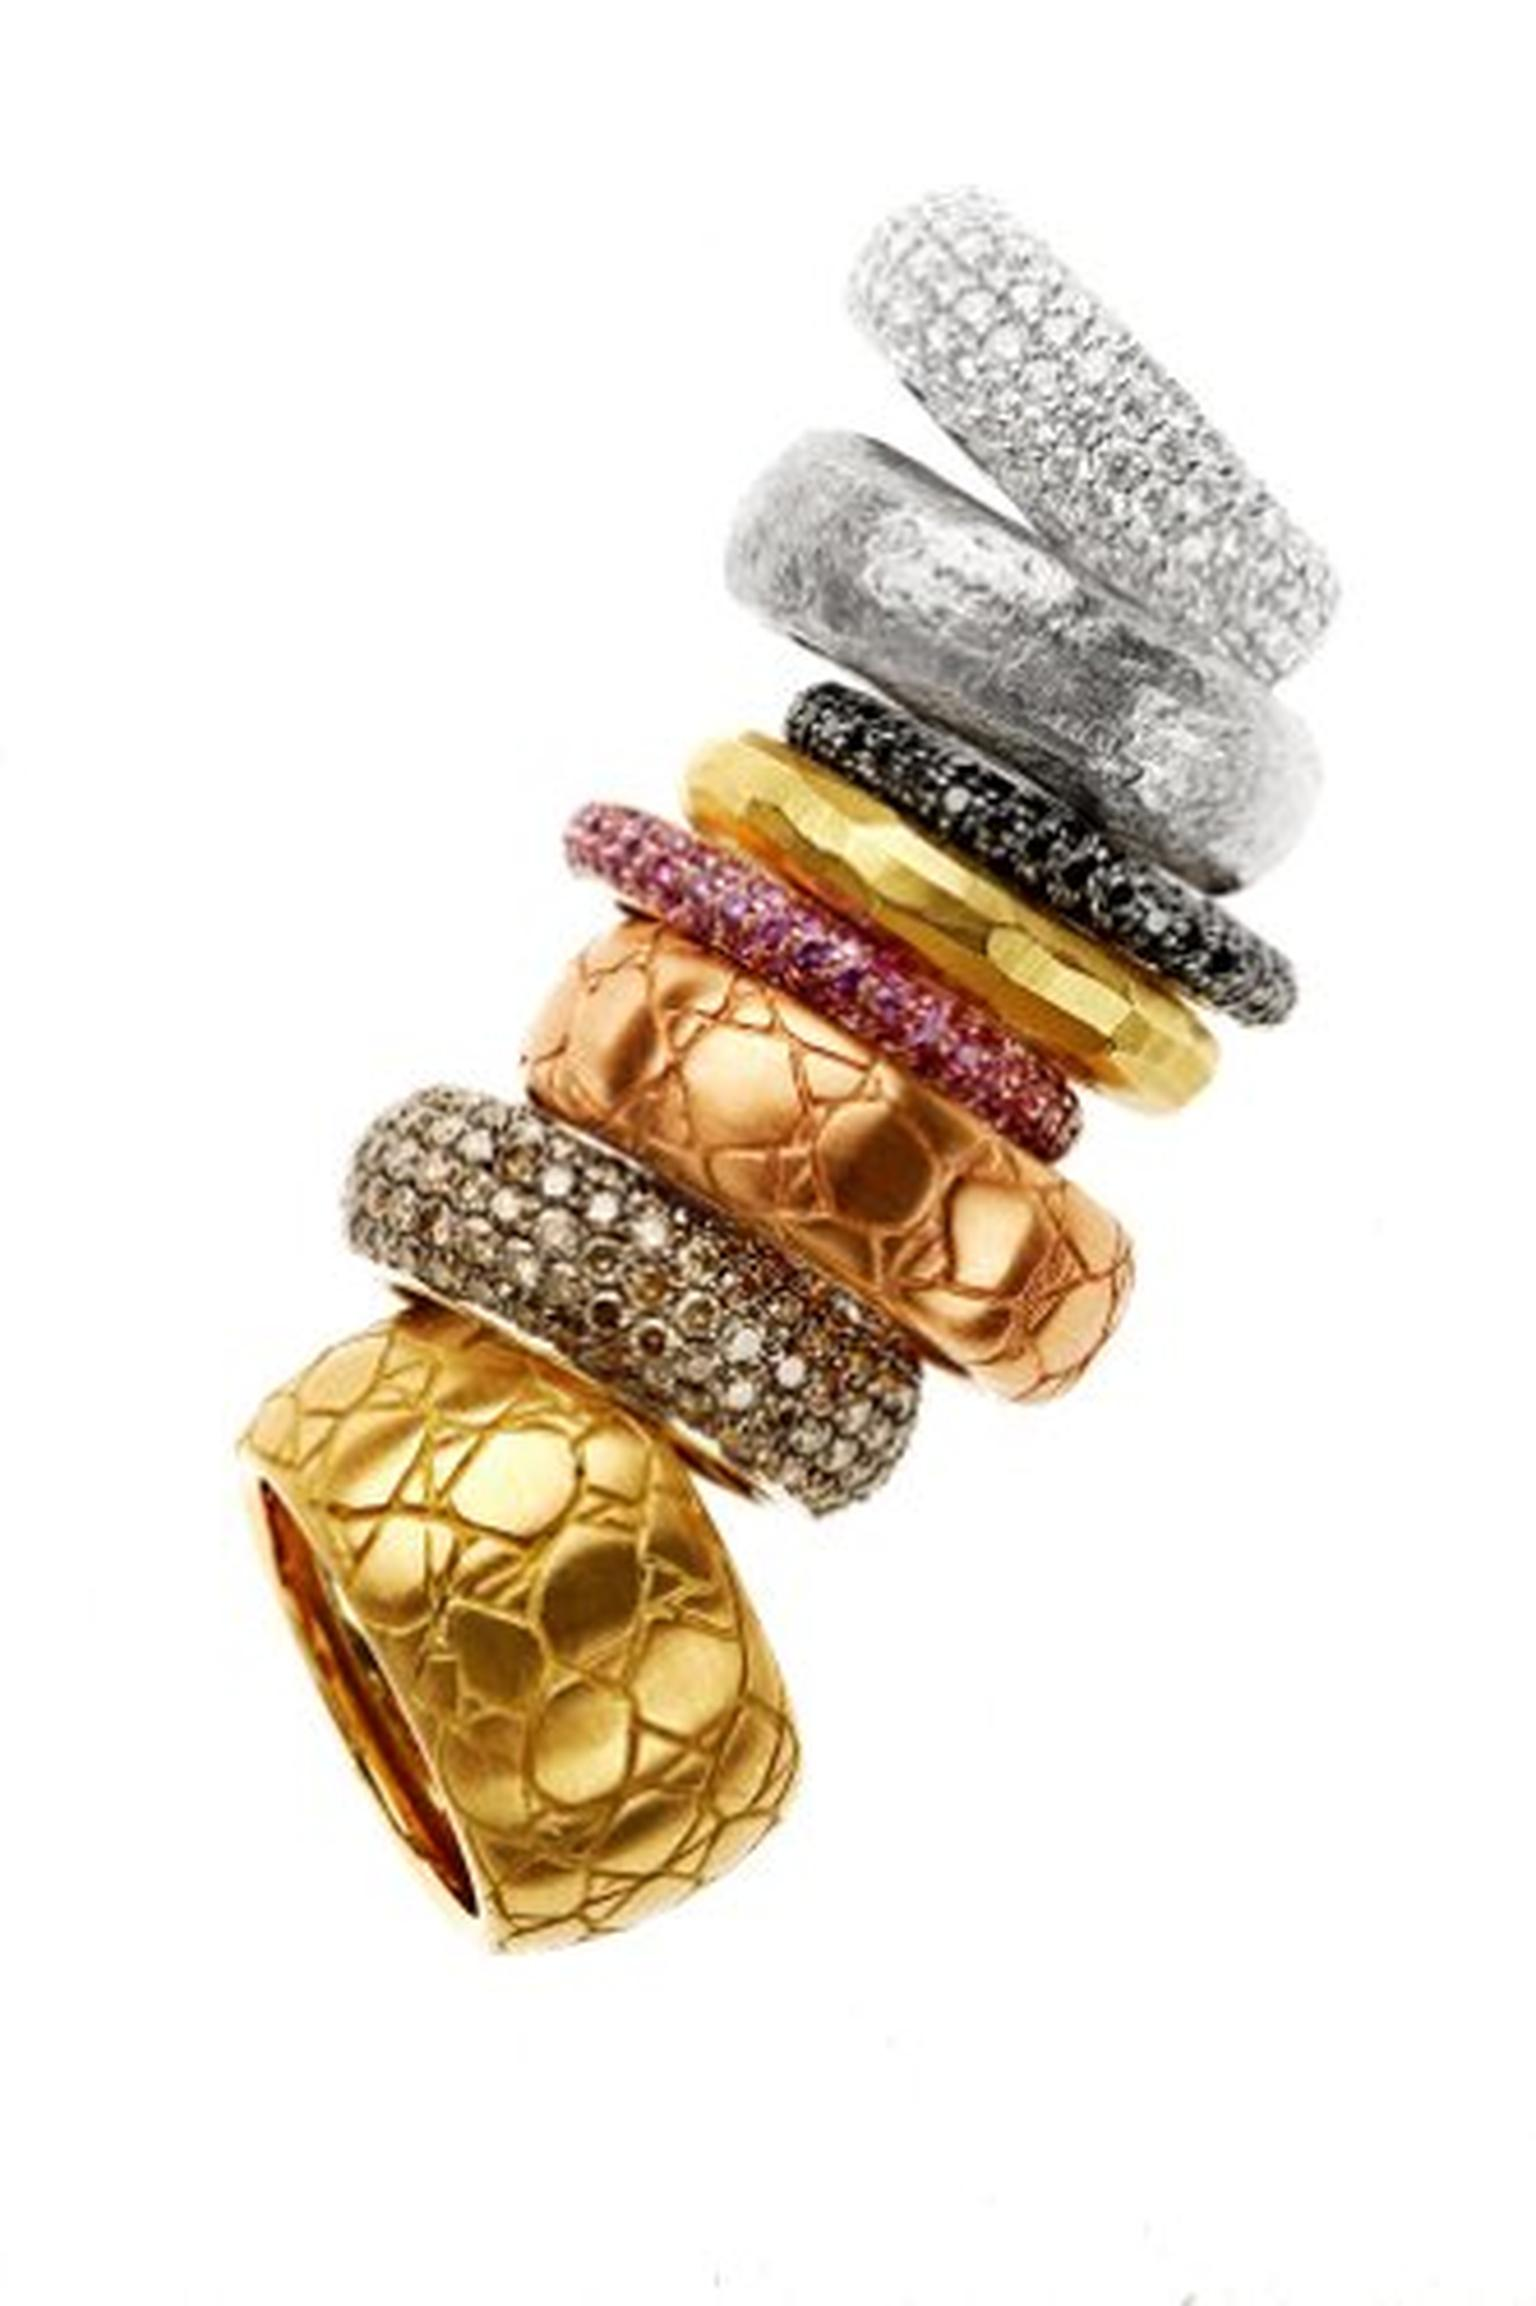 10) Rings from Texturas collection.jpg